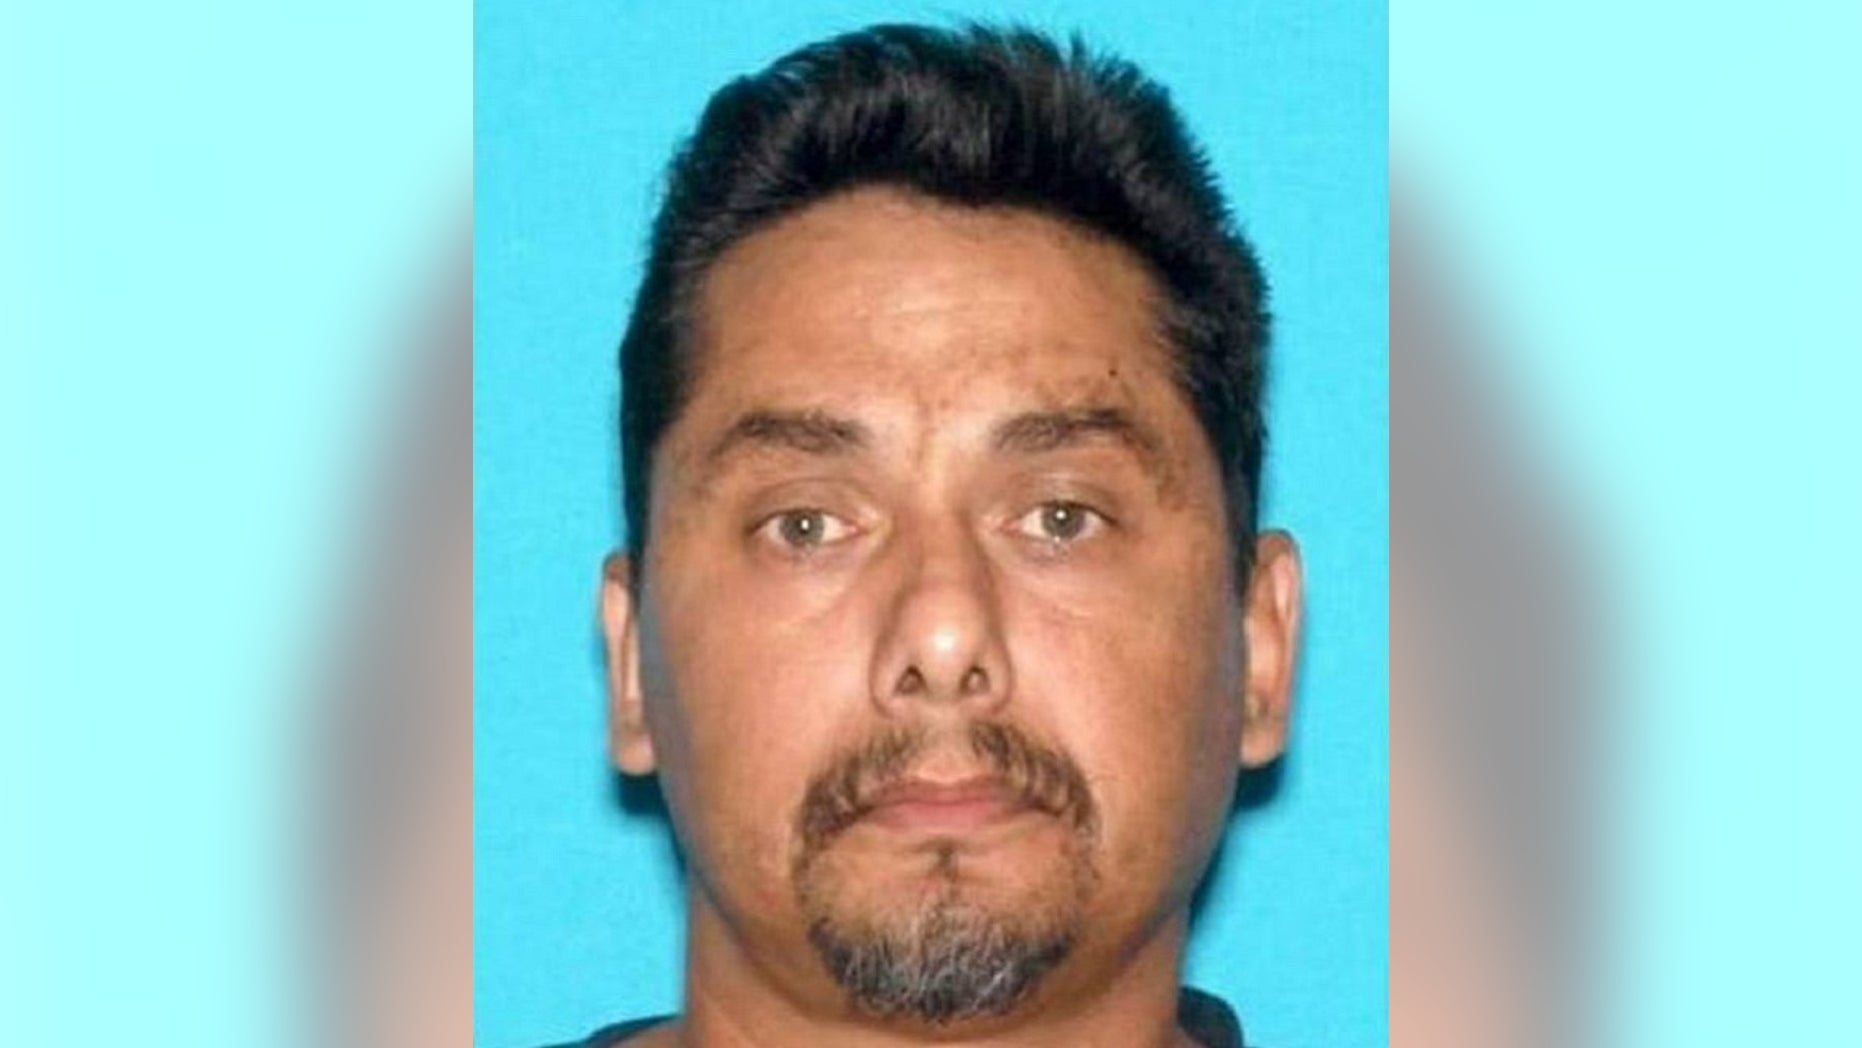 David Pena, 51, of Fresno, Calif., is accused of killing his estranged wife in November 2016.